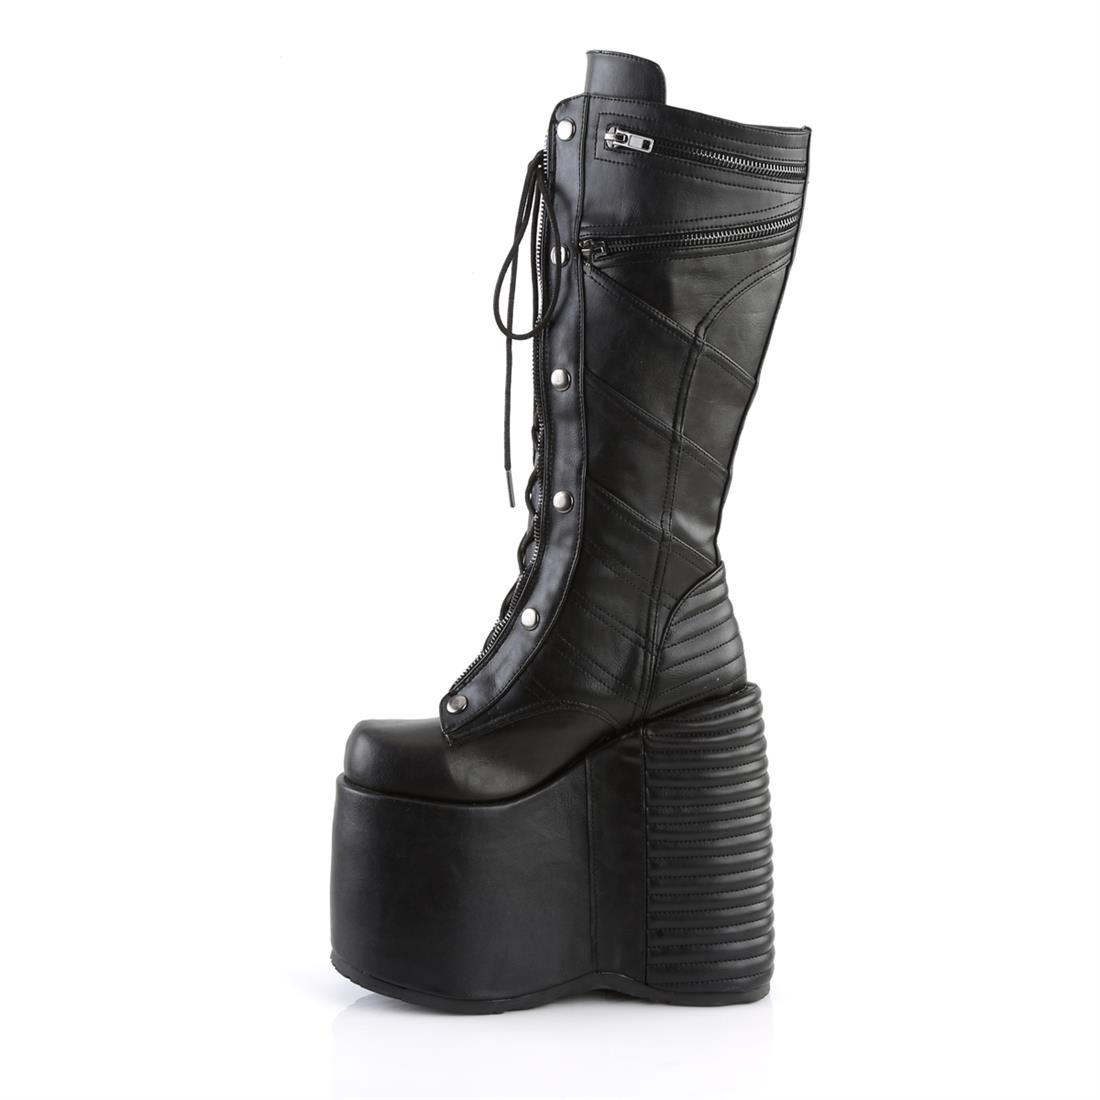 "Slay-320 Vegan Leather 7"" Platform Knee High Boot"